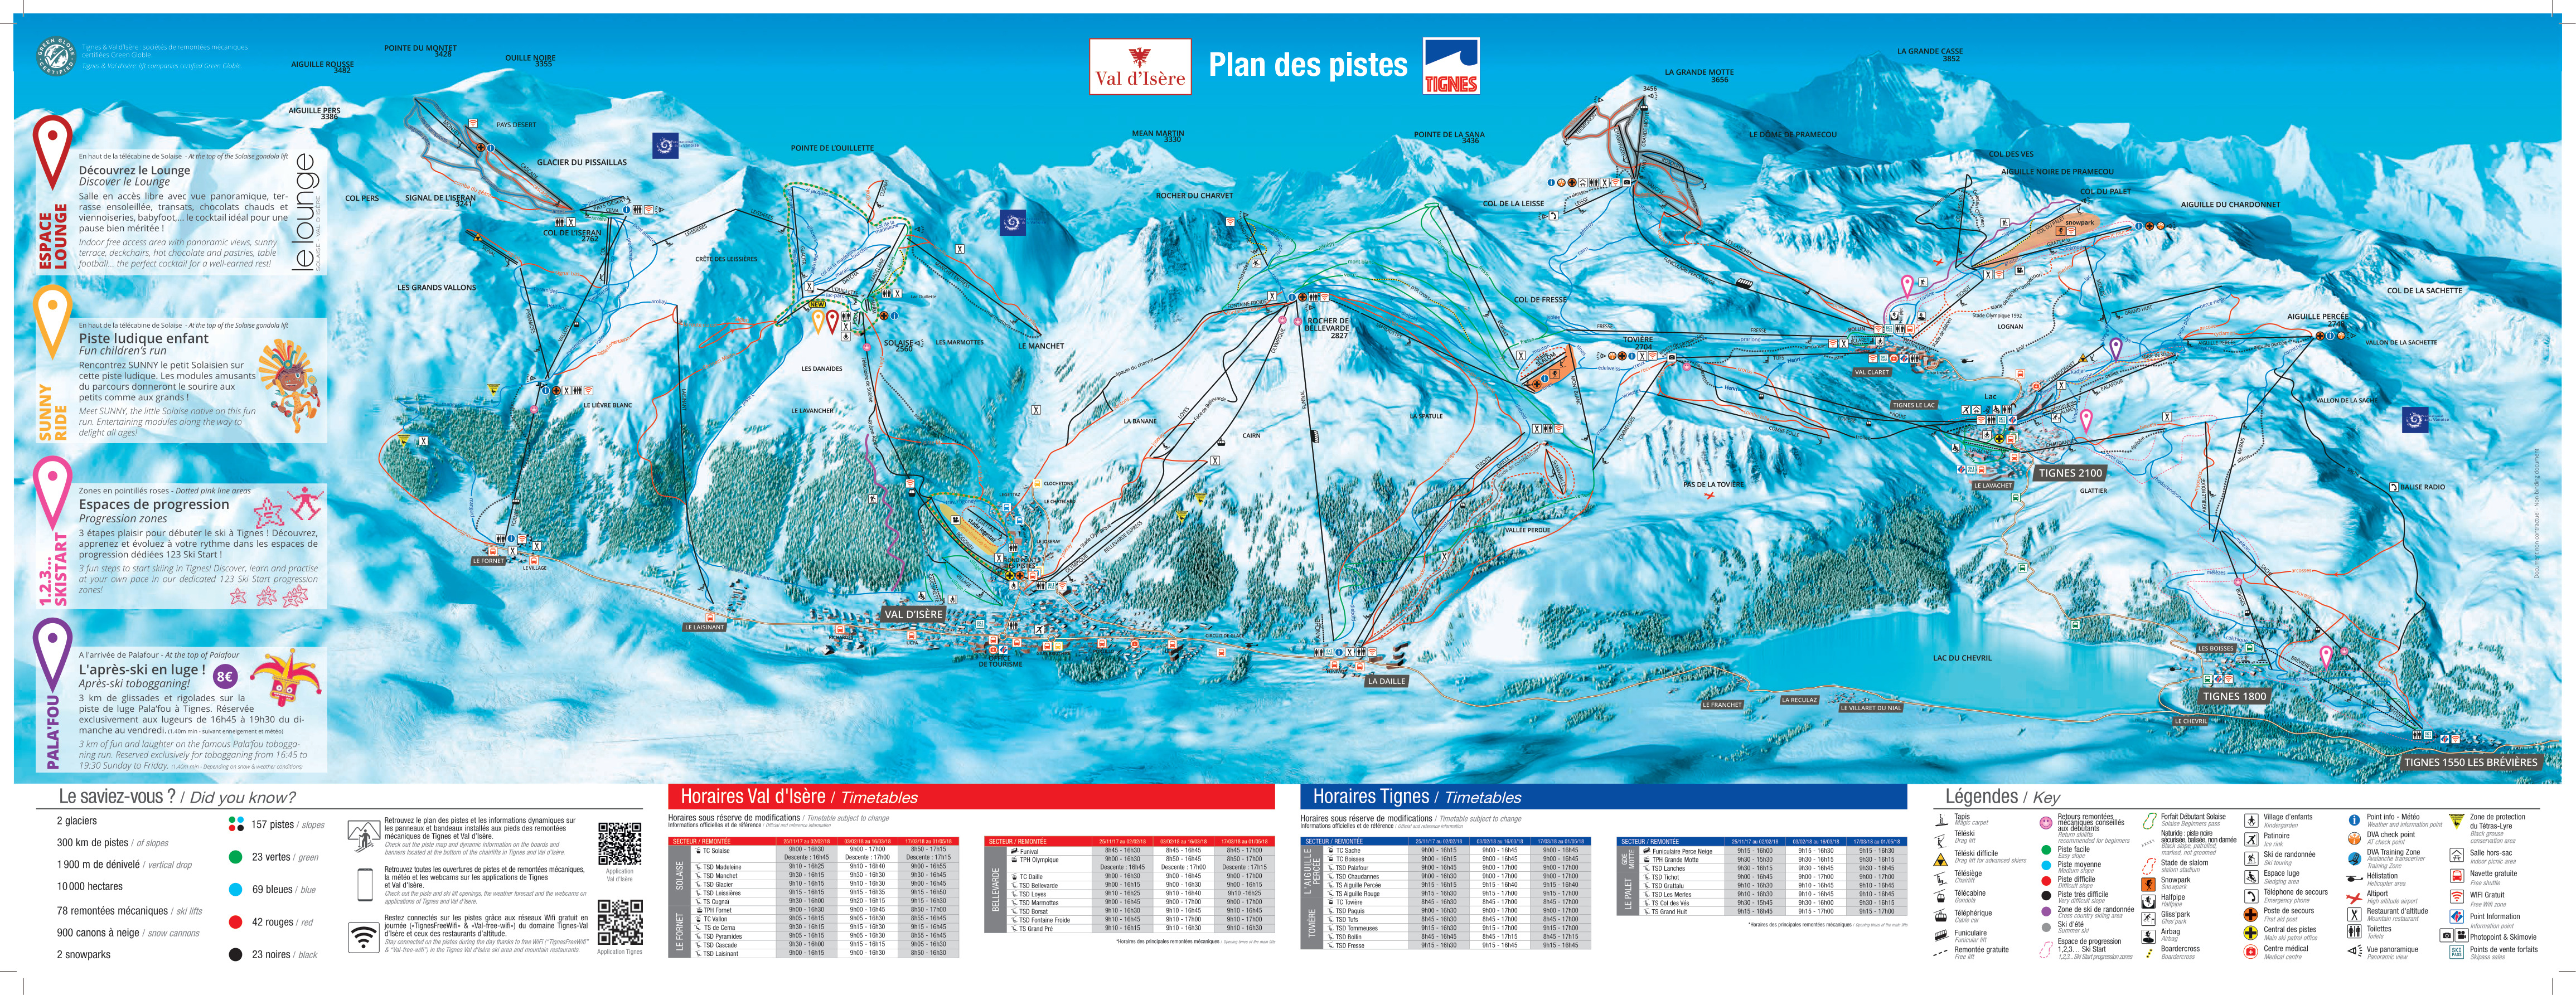 Val D Isere Piste Map Espace Killy (Val D'Isere, Tignes)   SkiMap.org